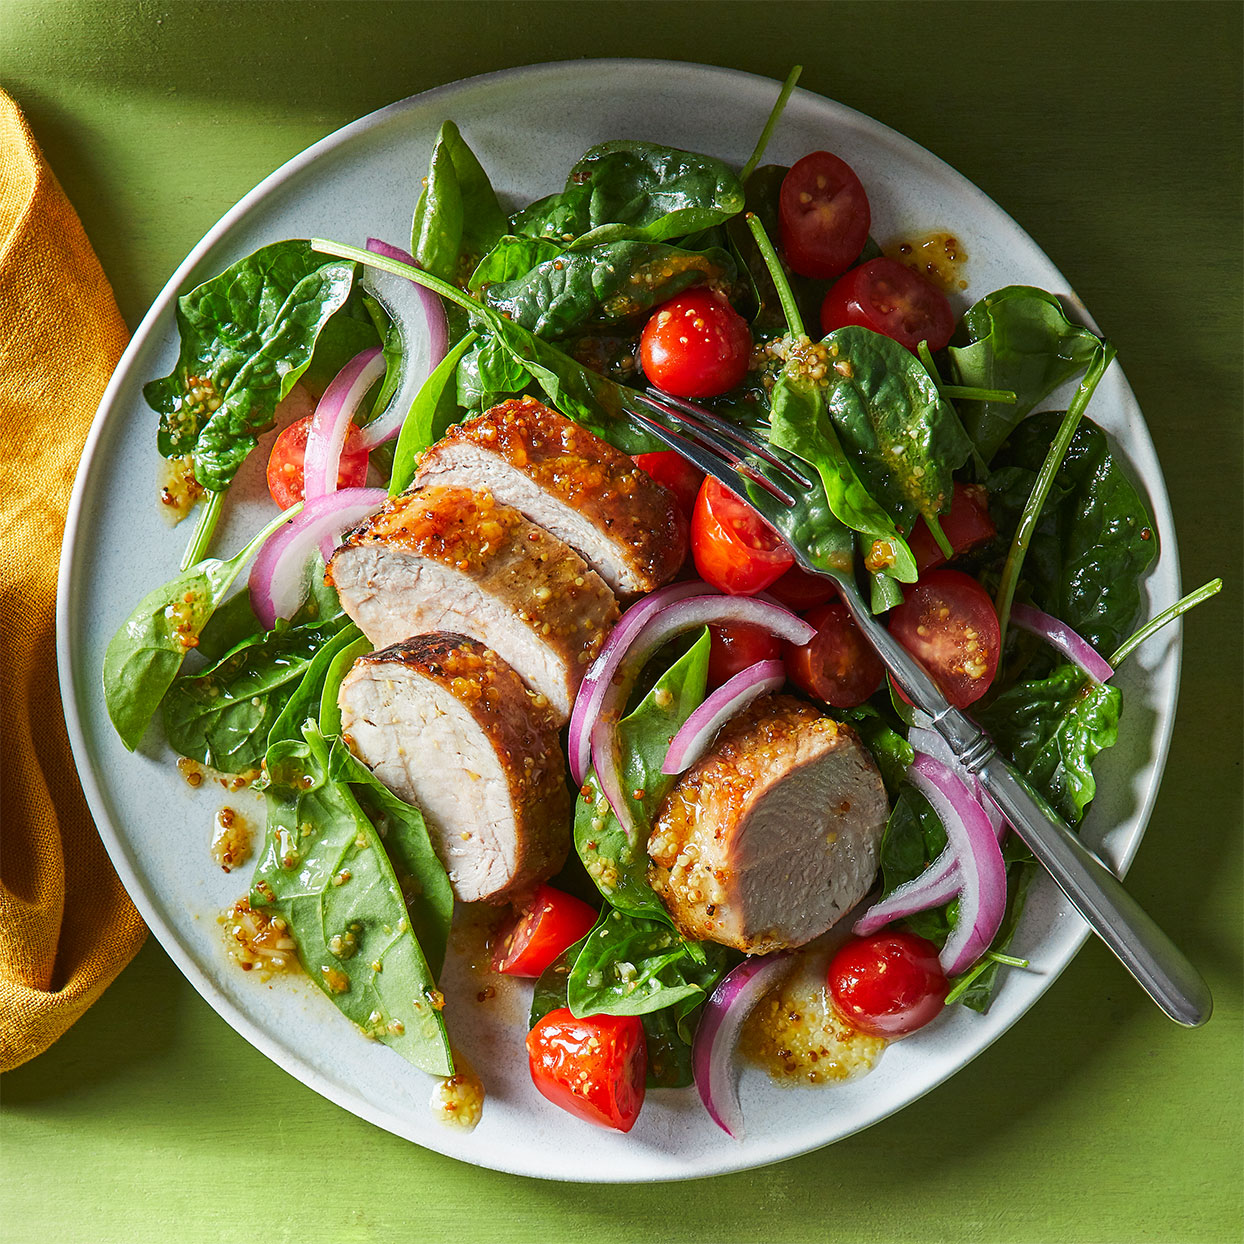 Apricot-Mustard Pork Tenderloin with Spinach Salad